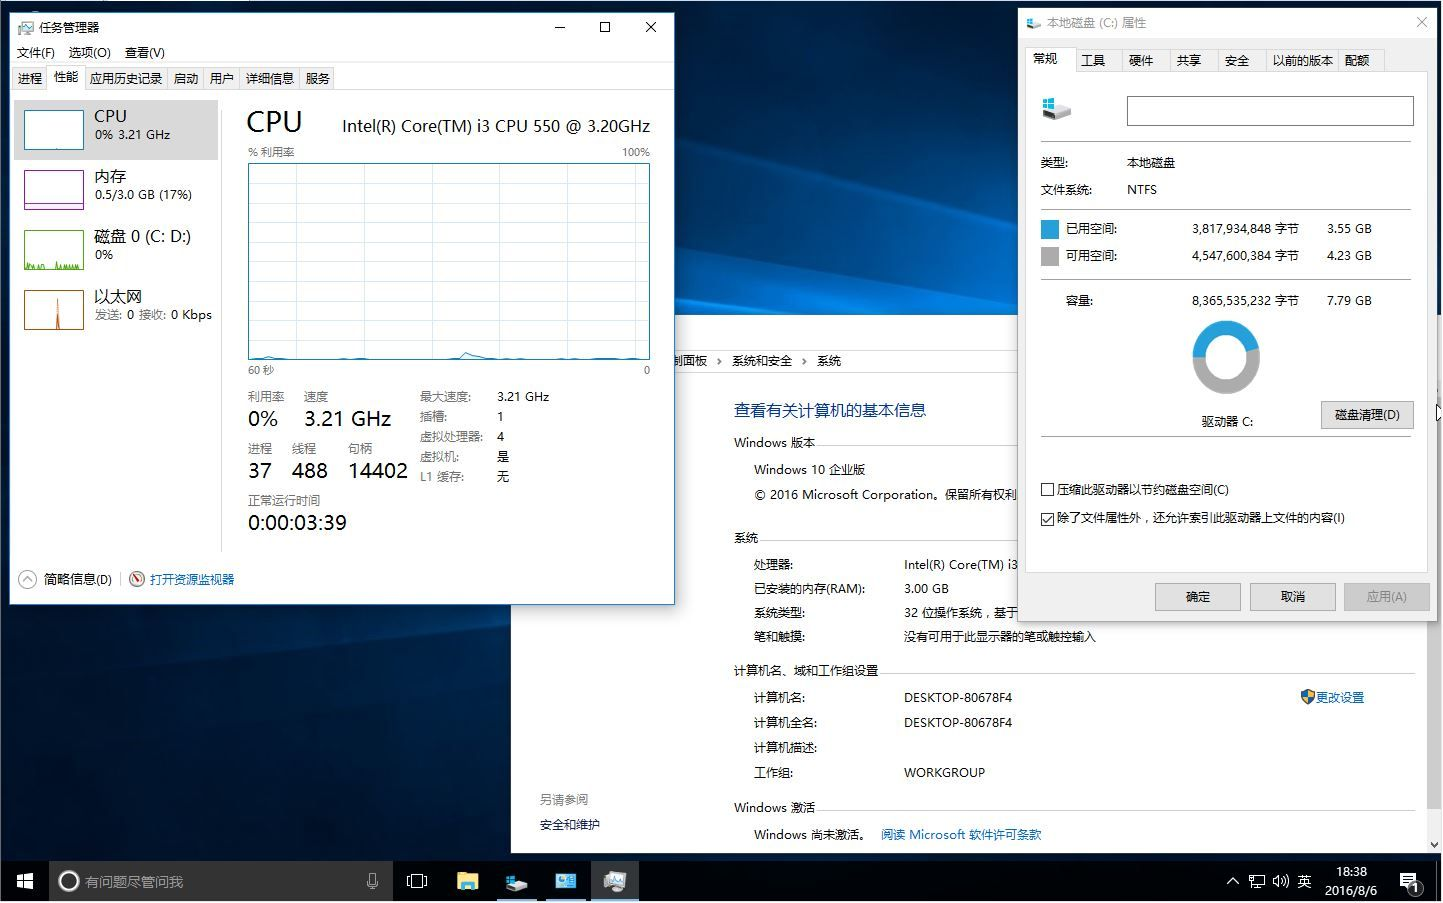 Windows 10 Enterprise 14393.51 x86-x64 zh-CN LITE 03